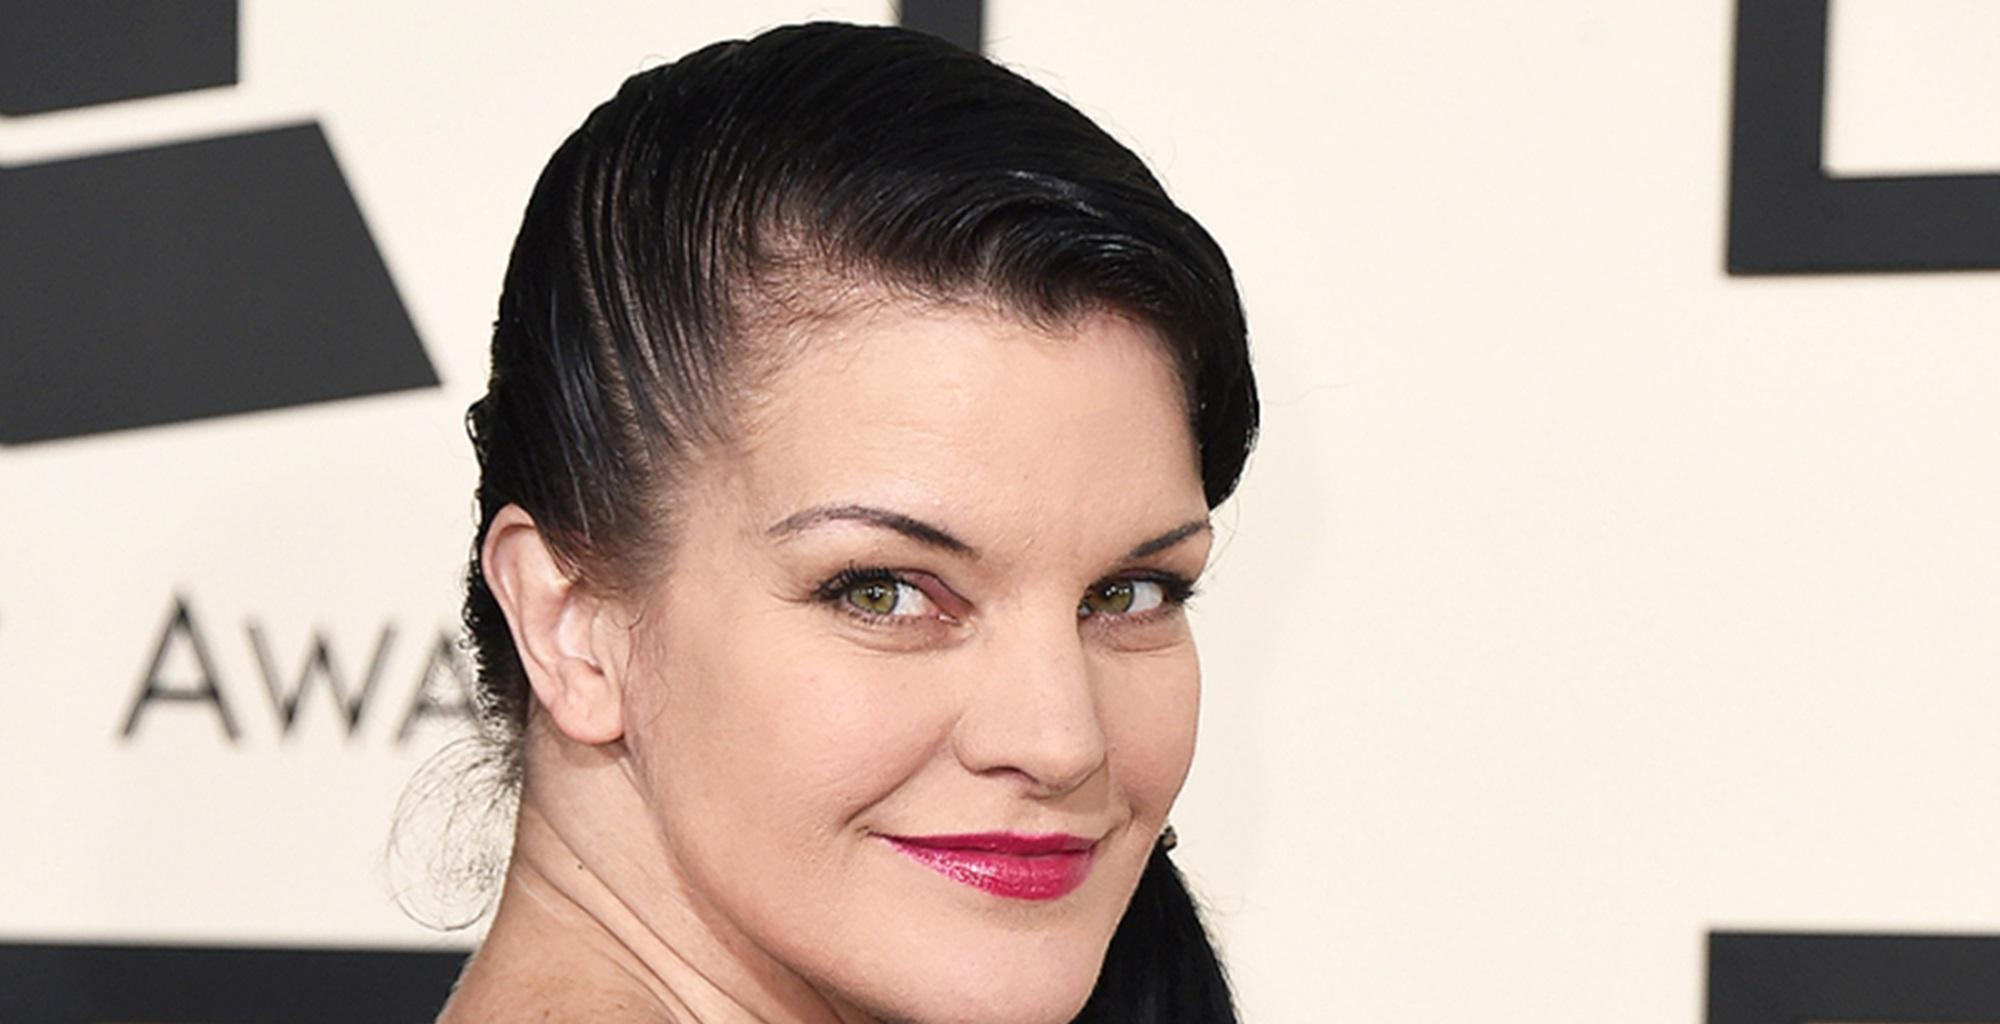 Pauley Perrette Is Now Defending Kelly Clarkson For This Reason As Some 'NCIS' Fans Claim Mark Harmon Used To Shade Her In Past Interviews